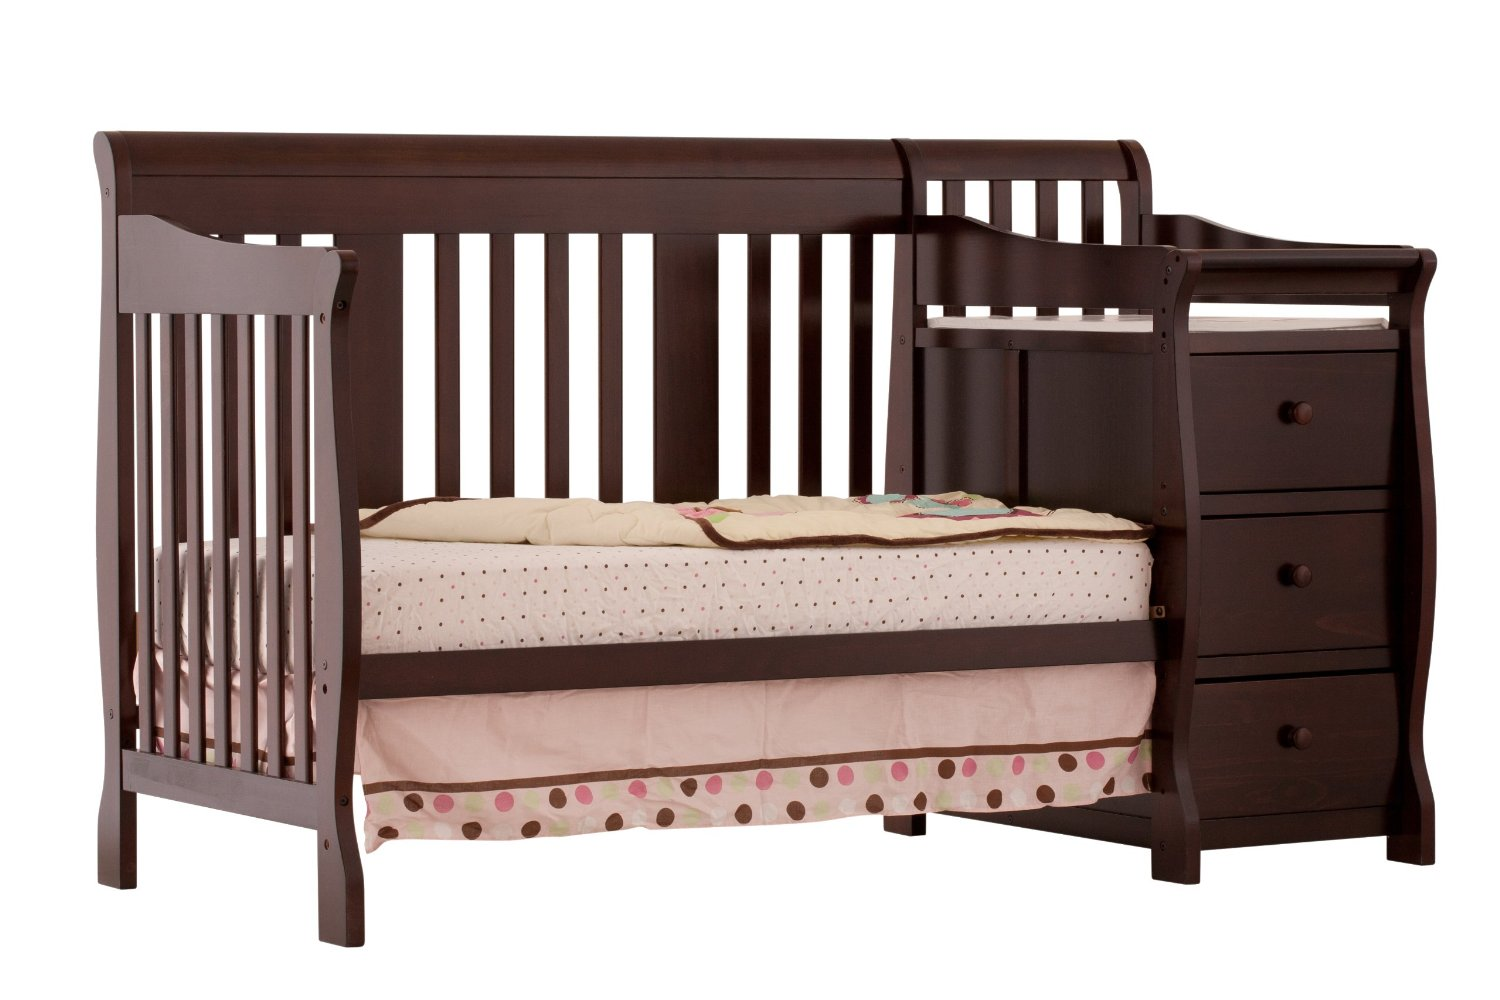 What is the best brand crib for baby - The 5 Best Convertible Cribs Of 2016